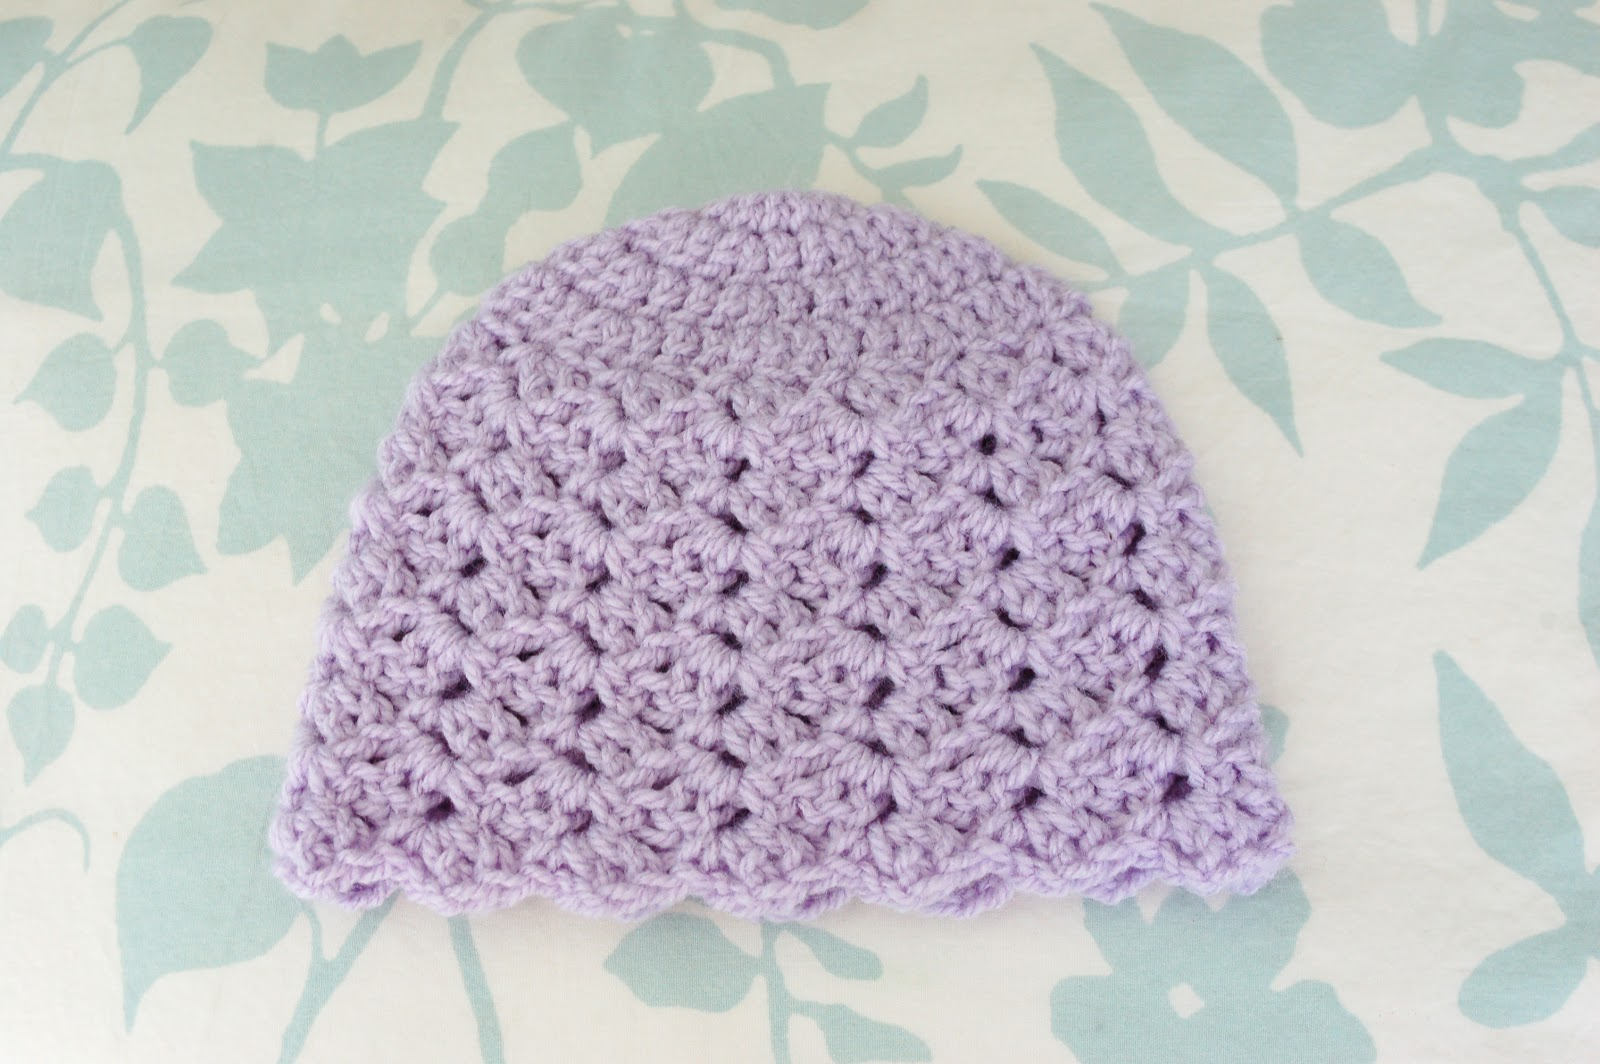 Free Crochet Baby Hat Patterns : Dc Double Crochet Sc Single Crochet Sl St Slip Stitch